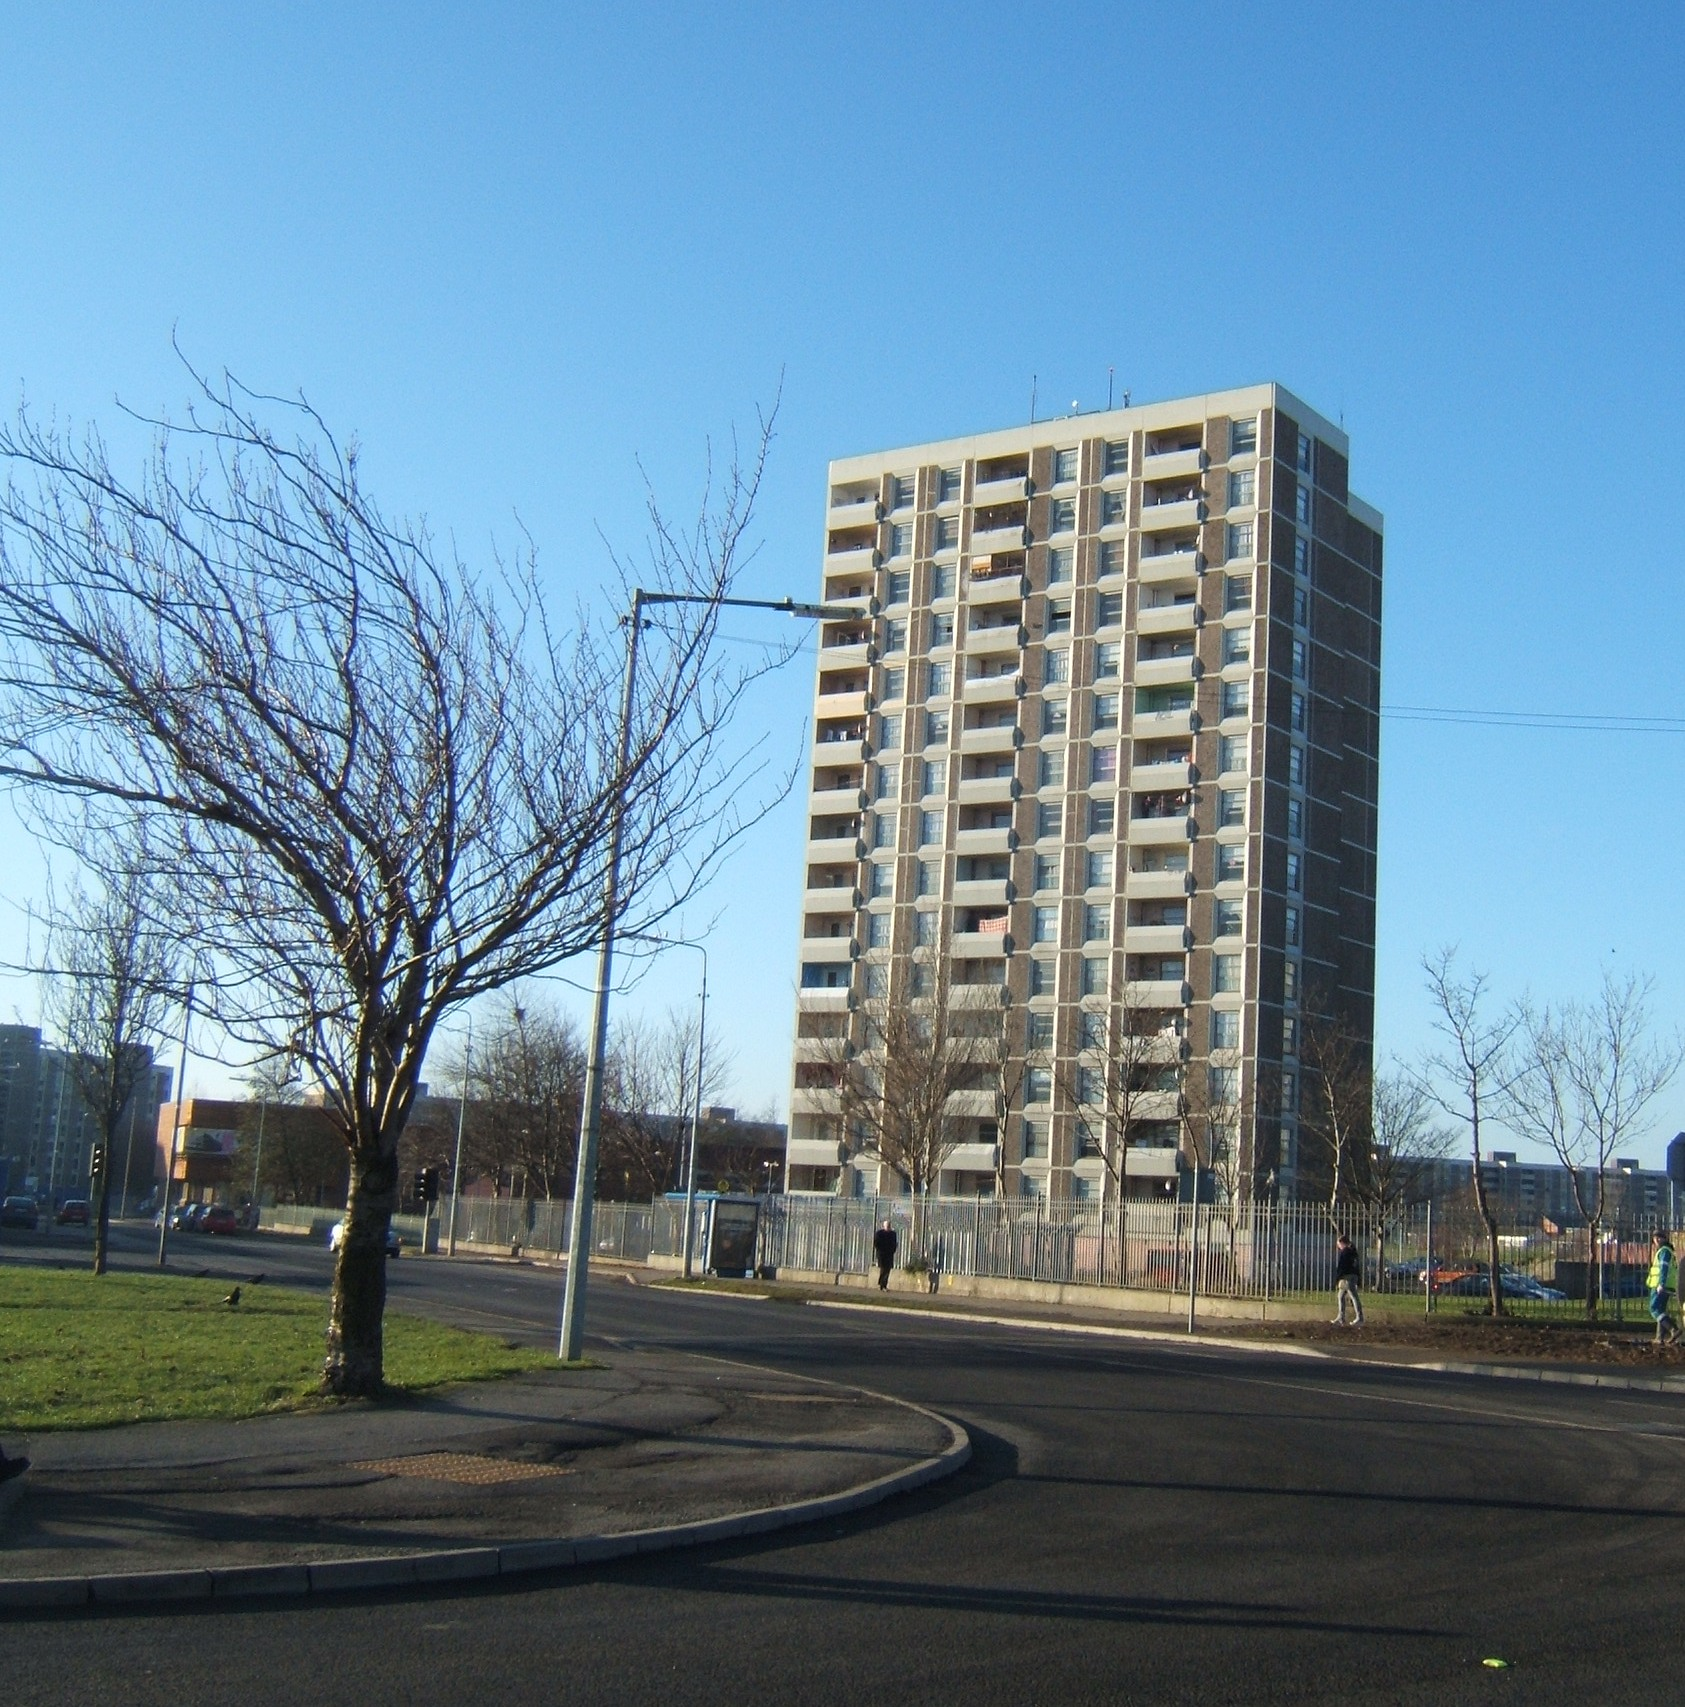 Ballymun Tower